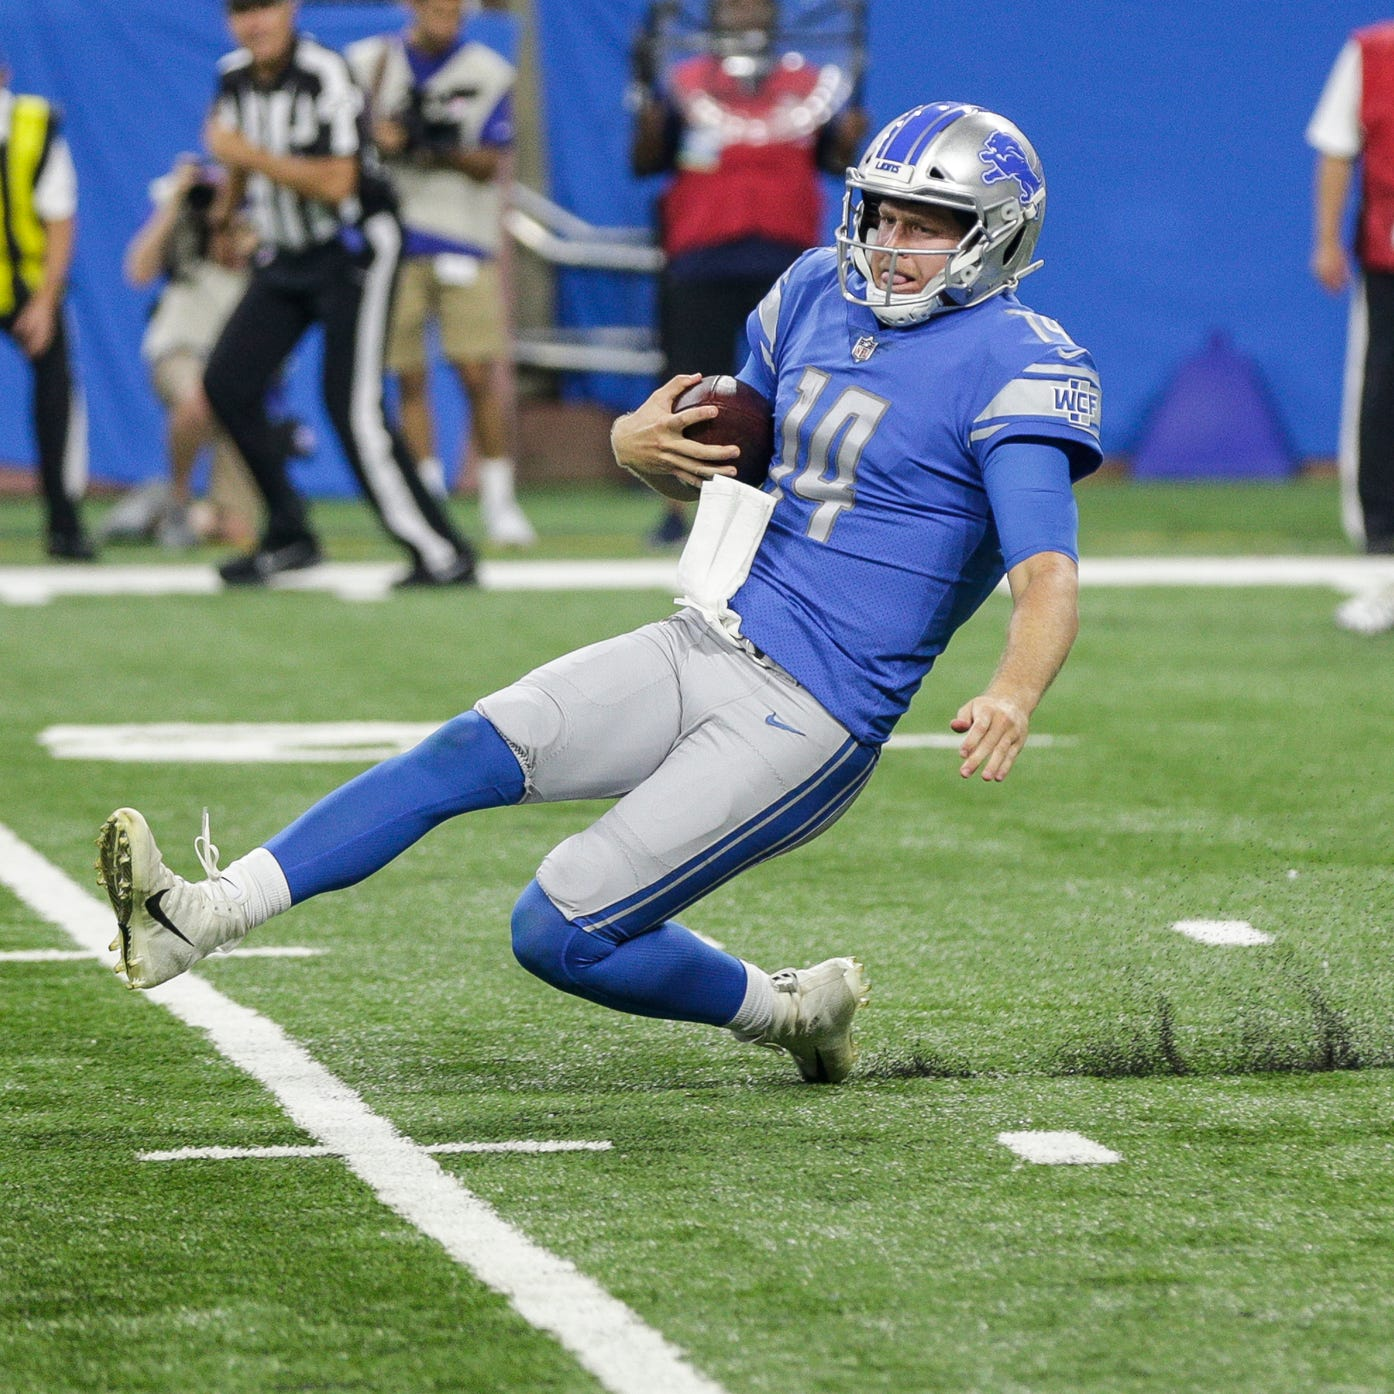 Detroit Lions backup QB race: Jake Rudock plays well, but isn't happy